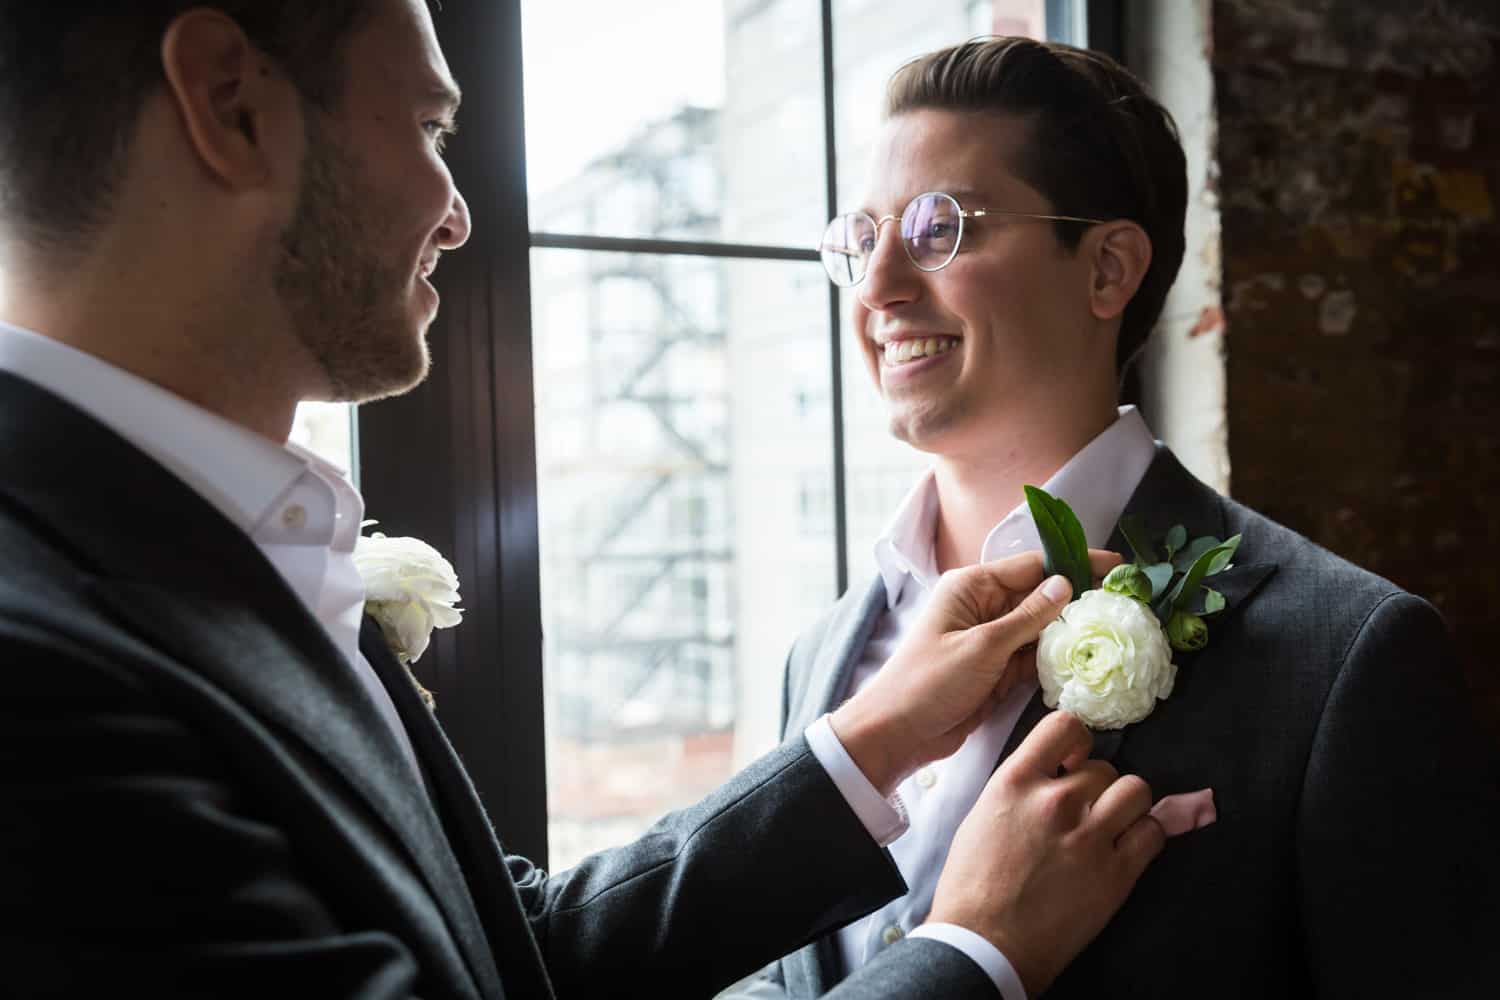 Greenpoint Loft wedding photos of groom helping other groom with his boutonniere